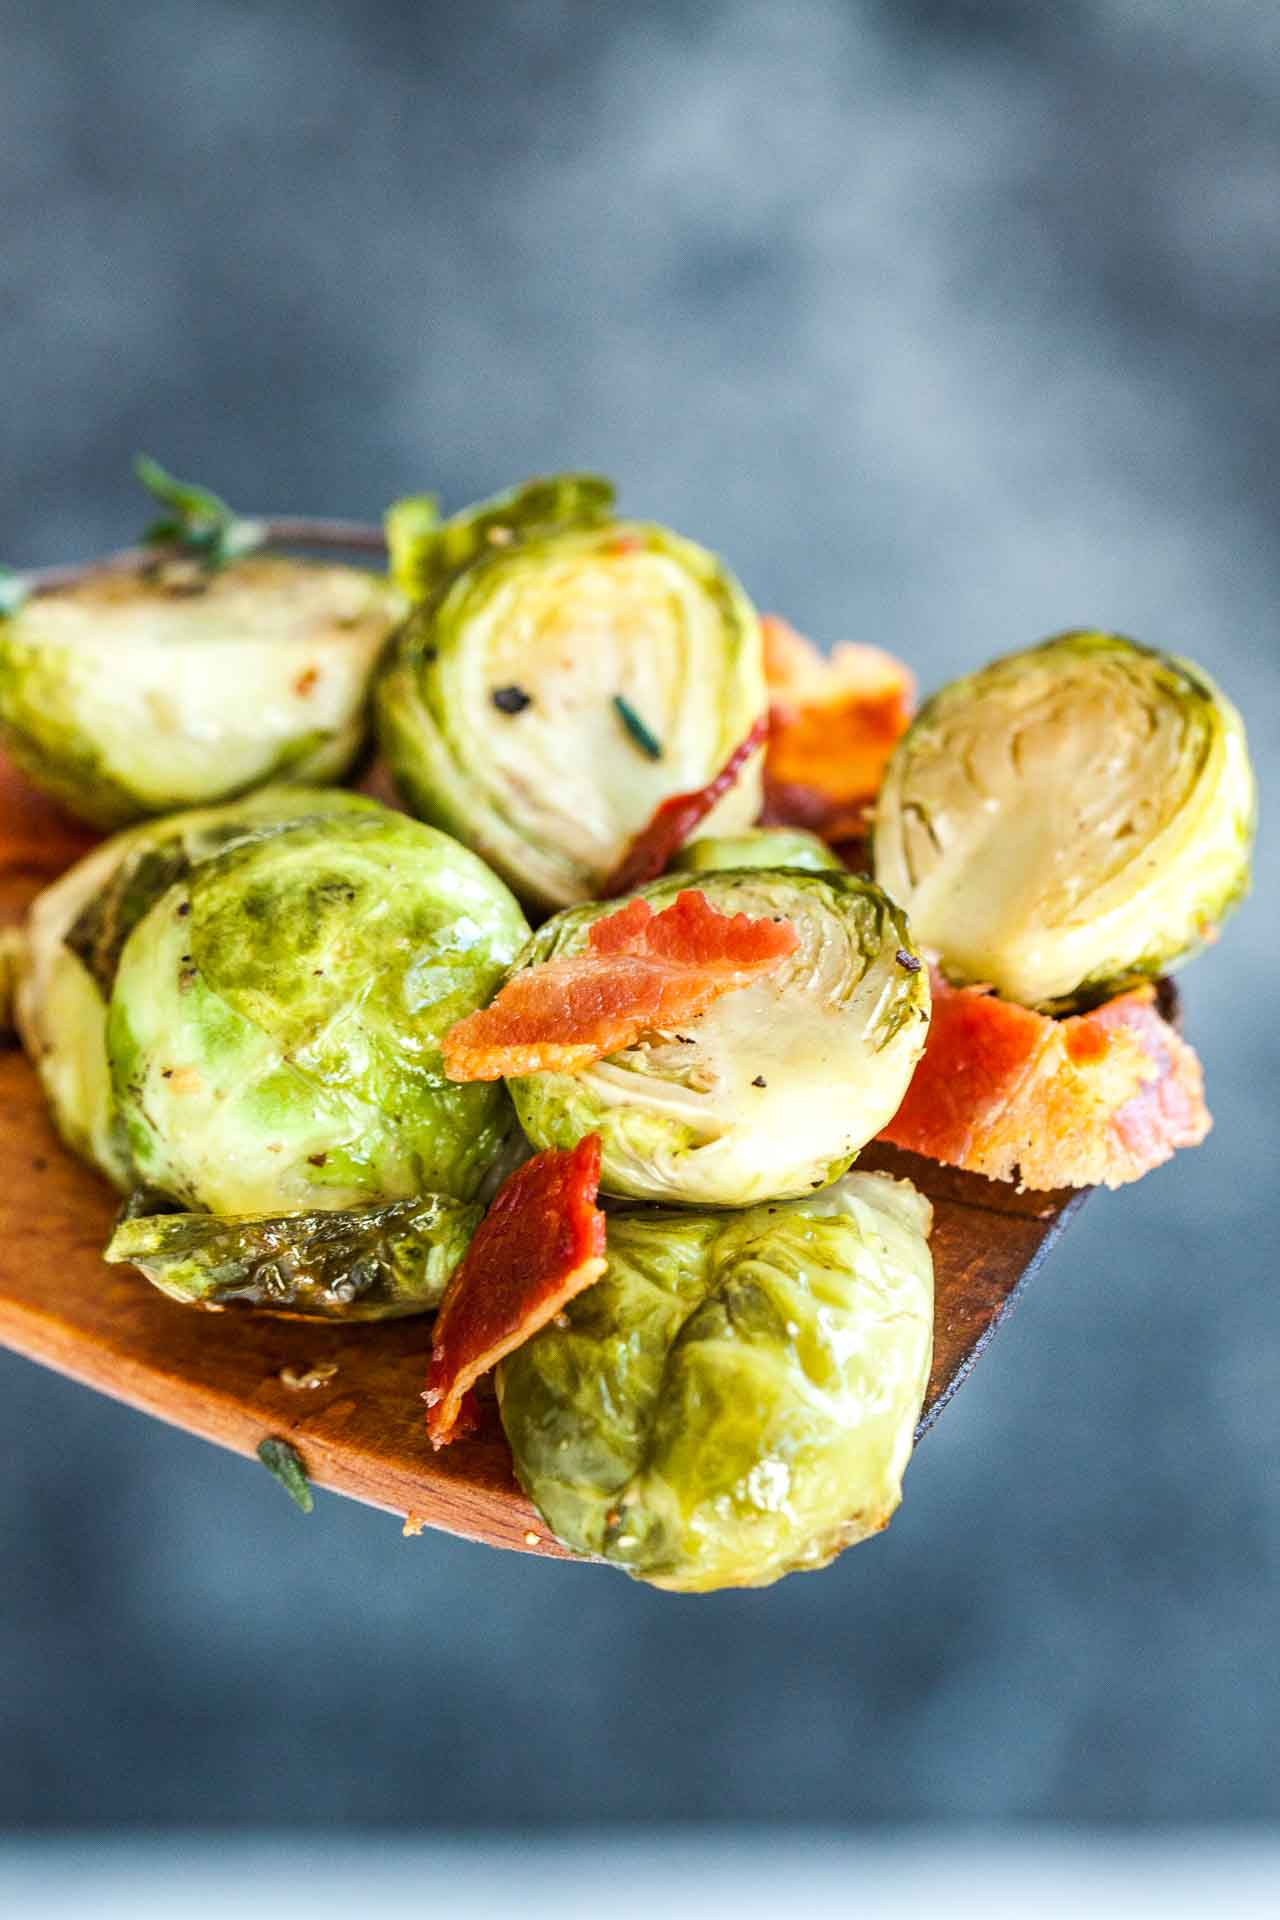 Brussels Sprouts with Bacon are easy to make and are bursting with flavor!